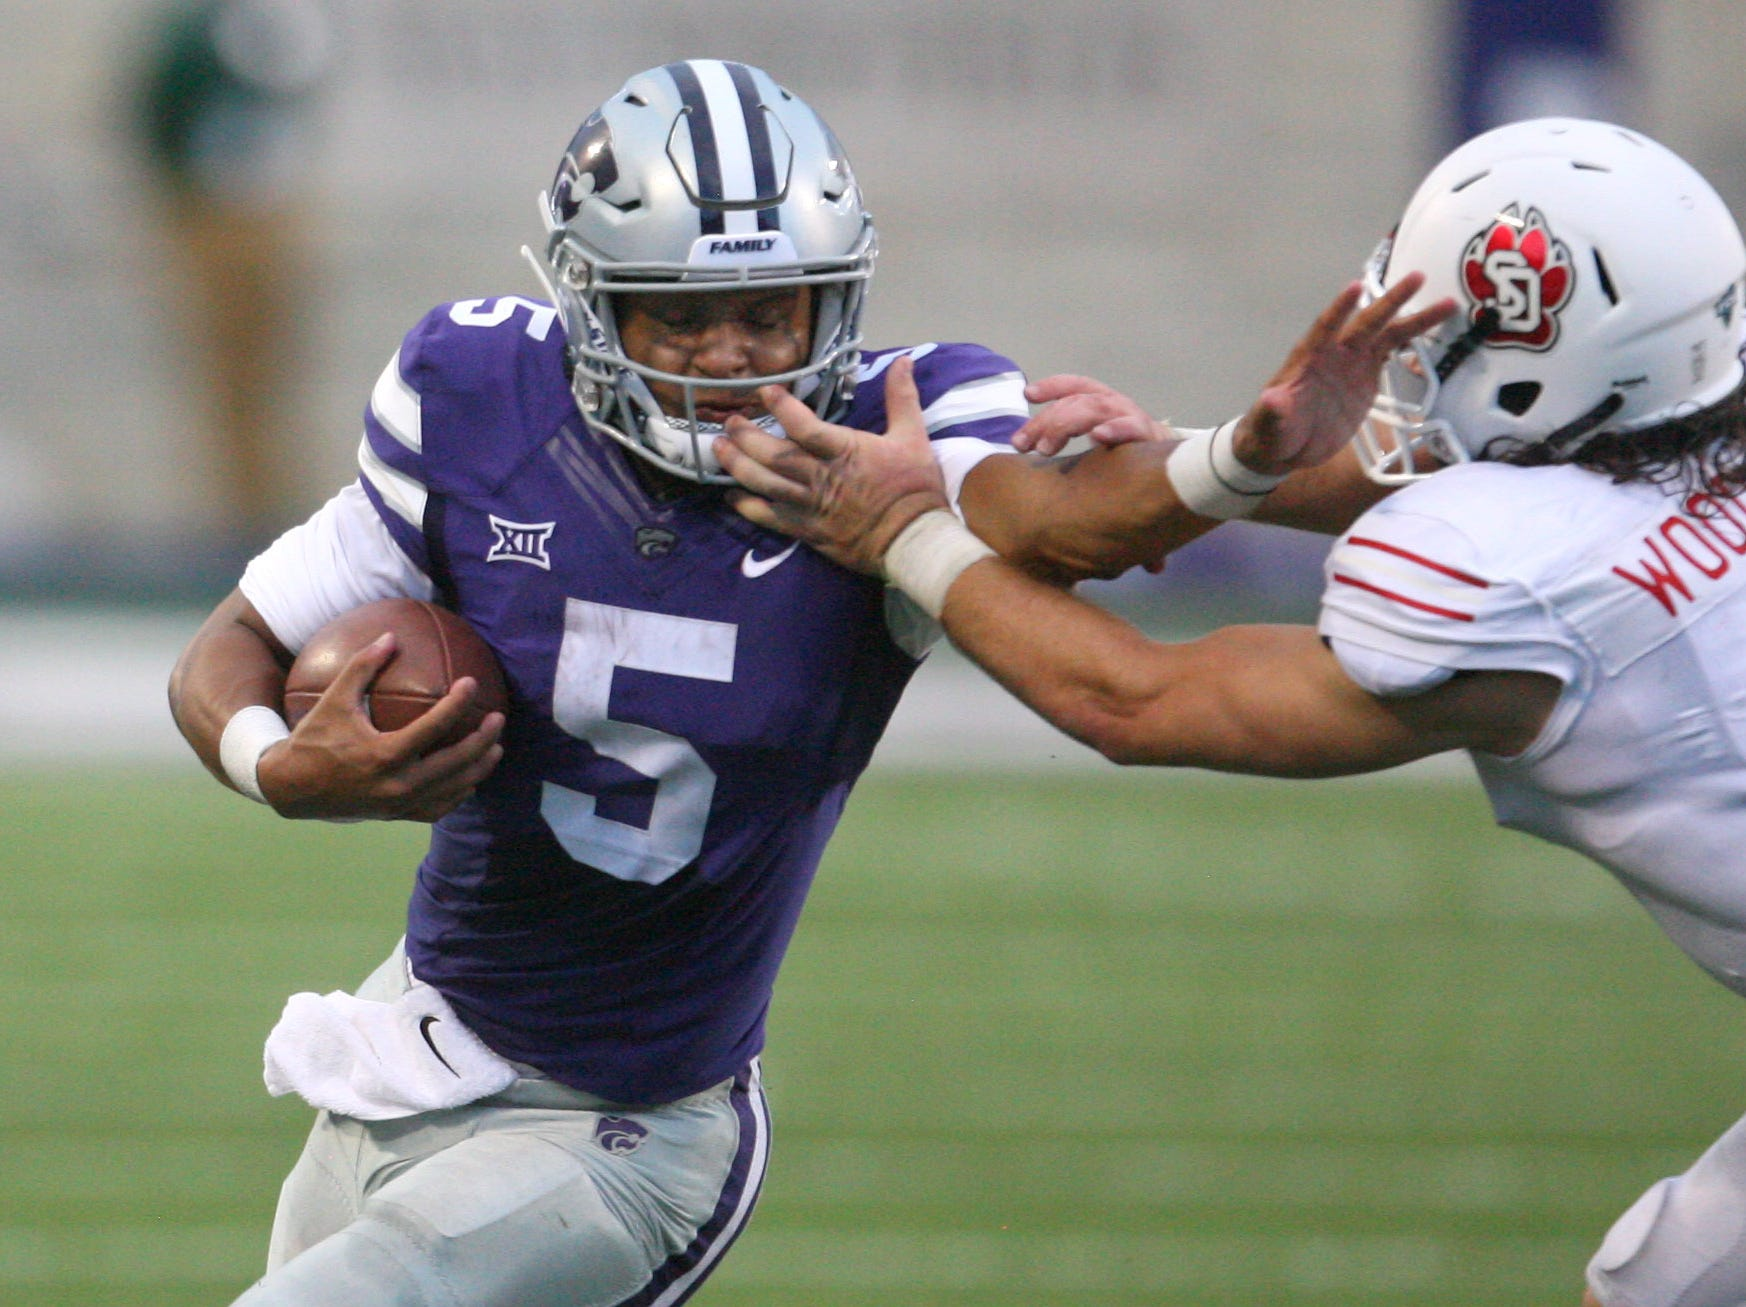 Sep 1, 2018; Manhattan, KS, USA; Kansas State Wildcats quarterback Alex Delton (5) tries to stiff arm South Dakota Coyotes linebacker Brian Woodward (5) during second quarter at Bill Snyder Family Stadium. Mandatory Credit: Scott Sewell-USA TODAY Sports